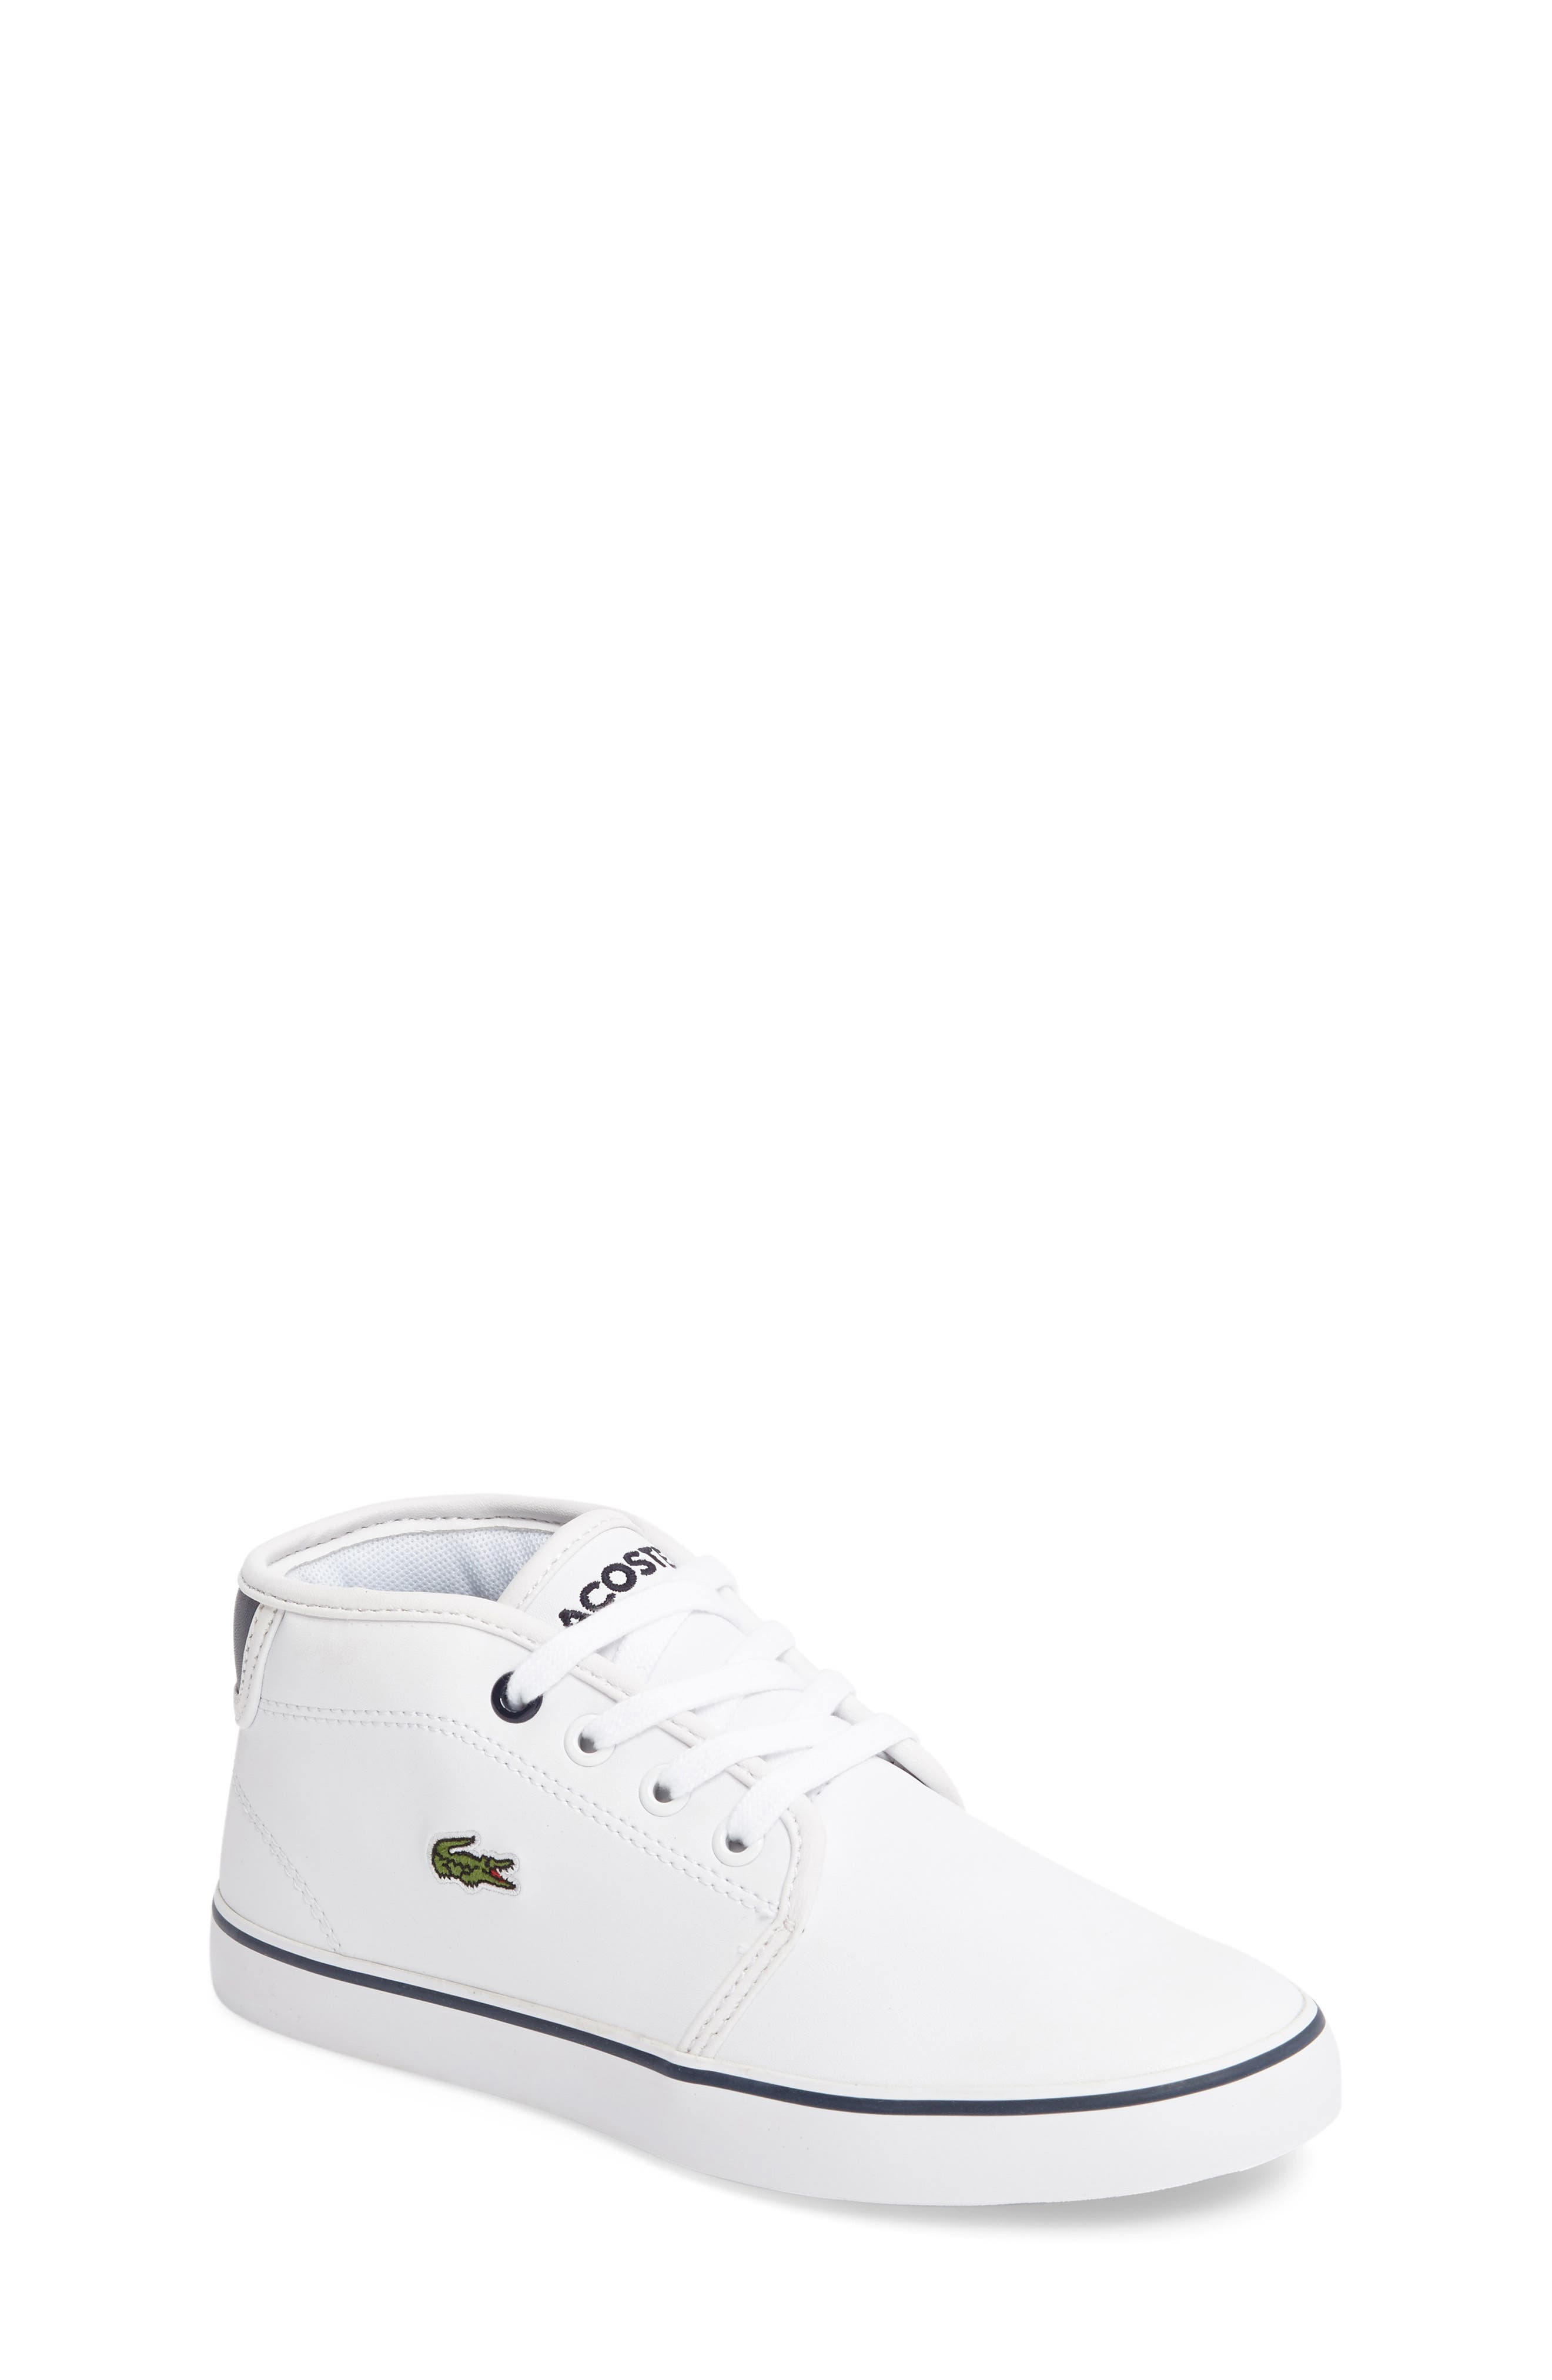 Ampthill High Top Sneaker,                             Main thumbnail 1, color,                             White/ Navy Faux Leather